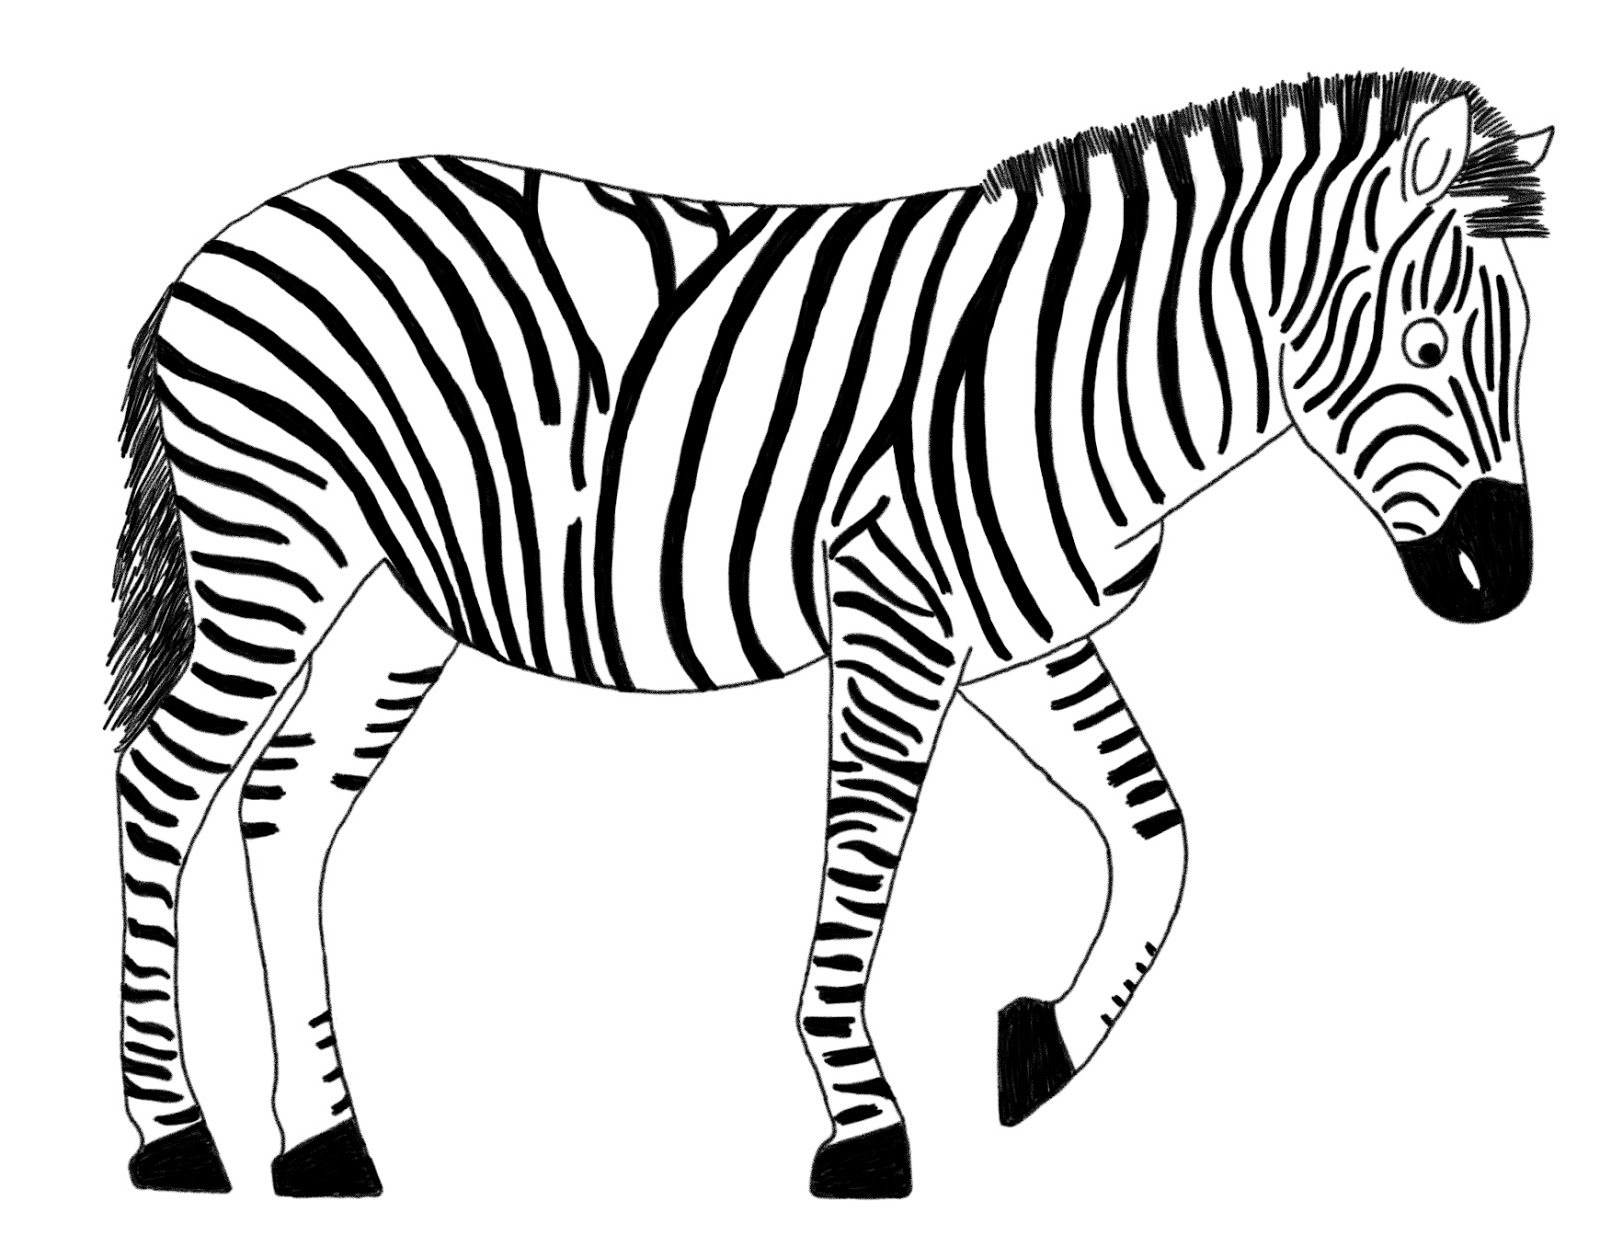 Zebra Line Drawing At Getdrawings